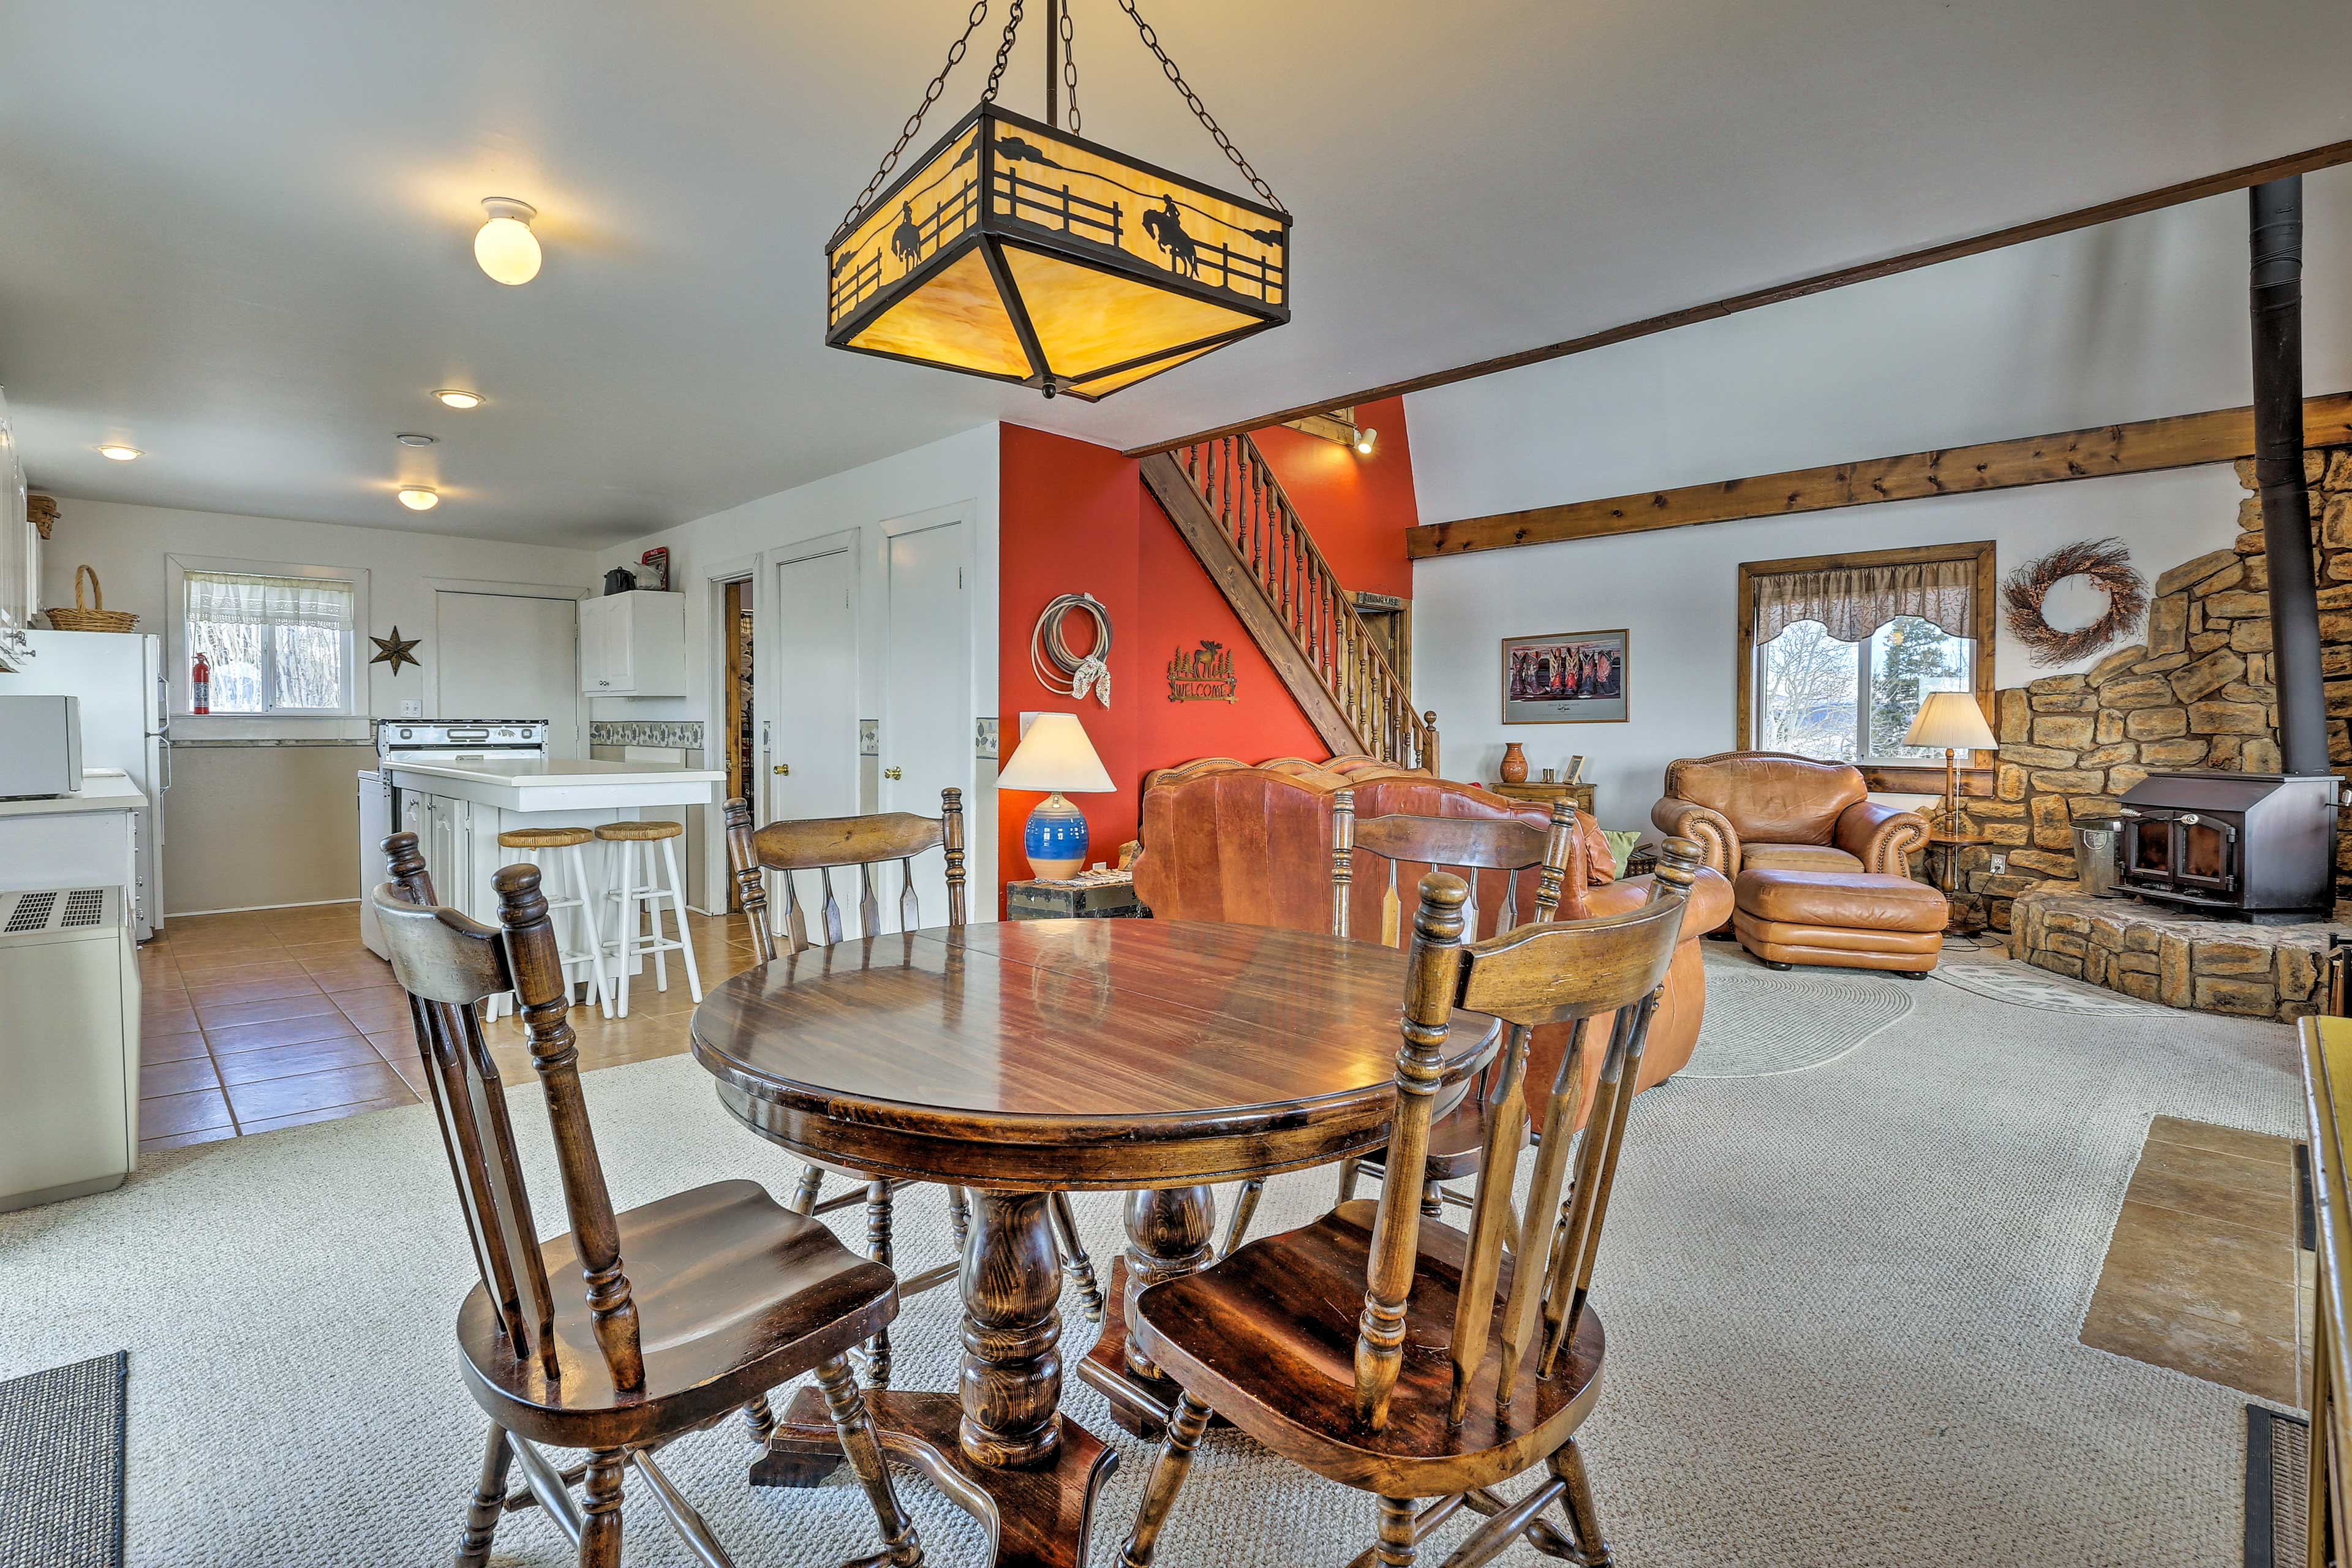 Gather around the dining table with room for 4.